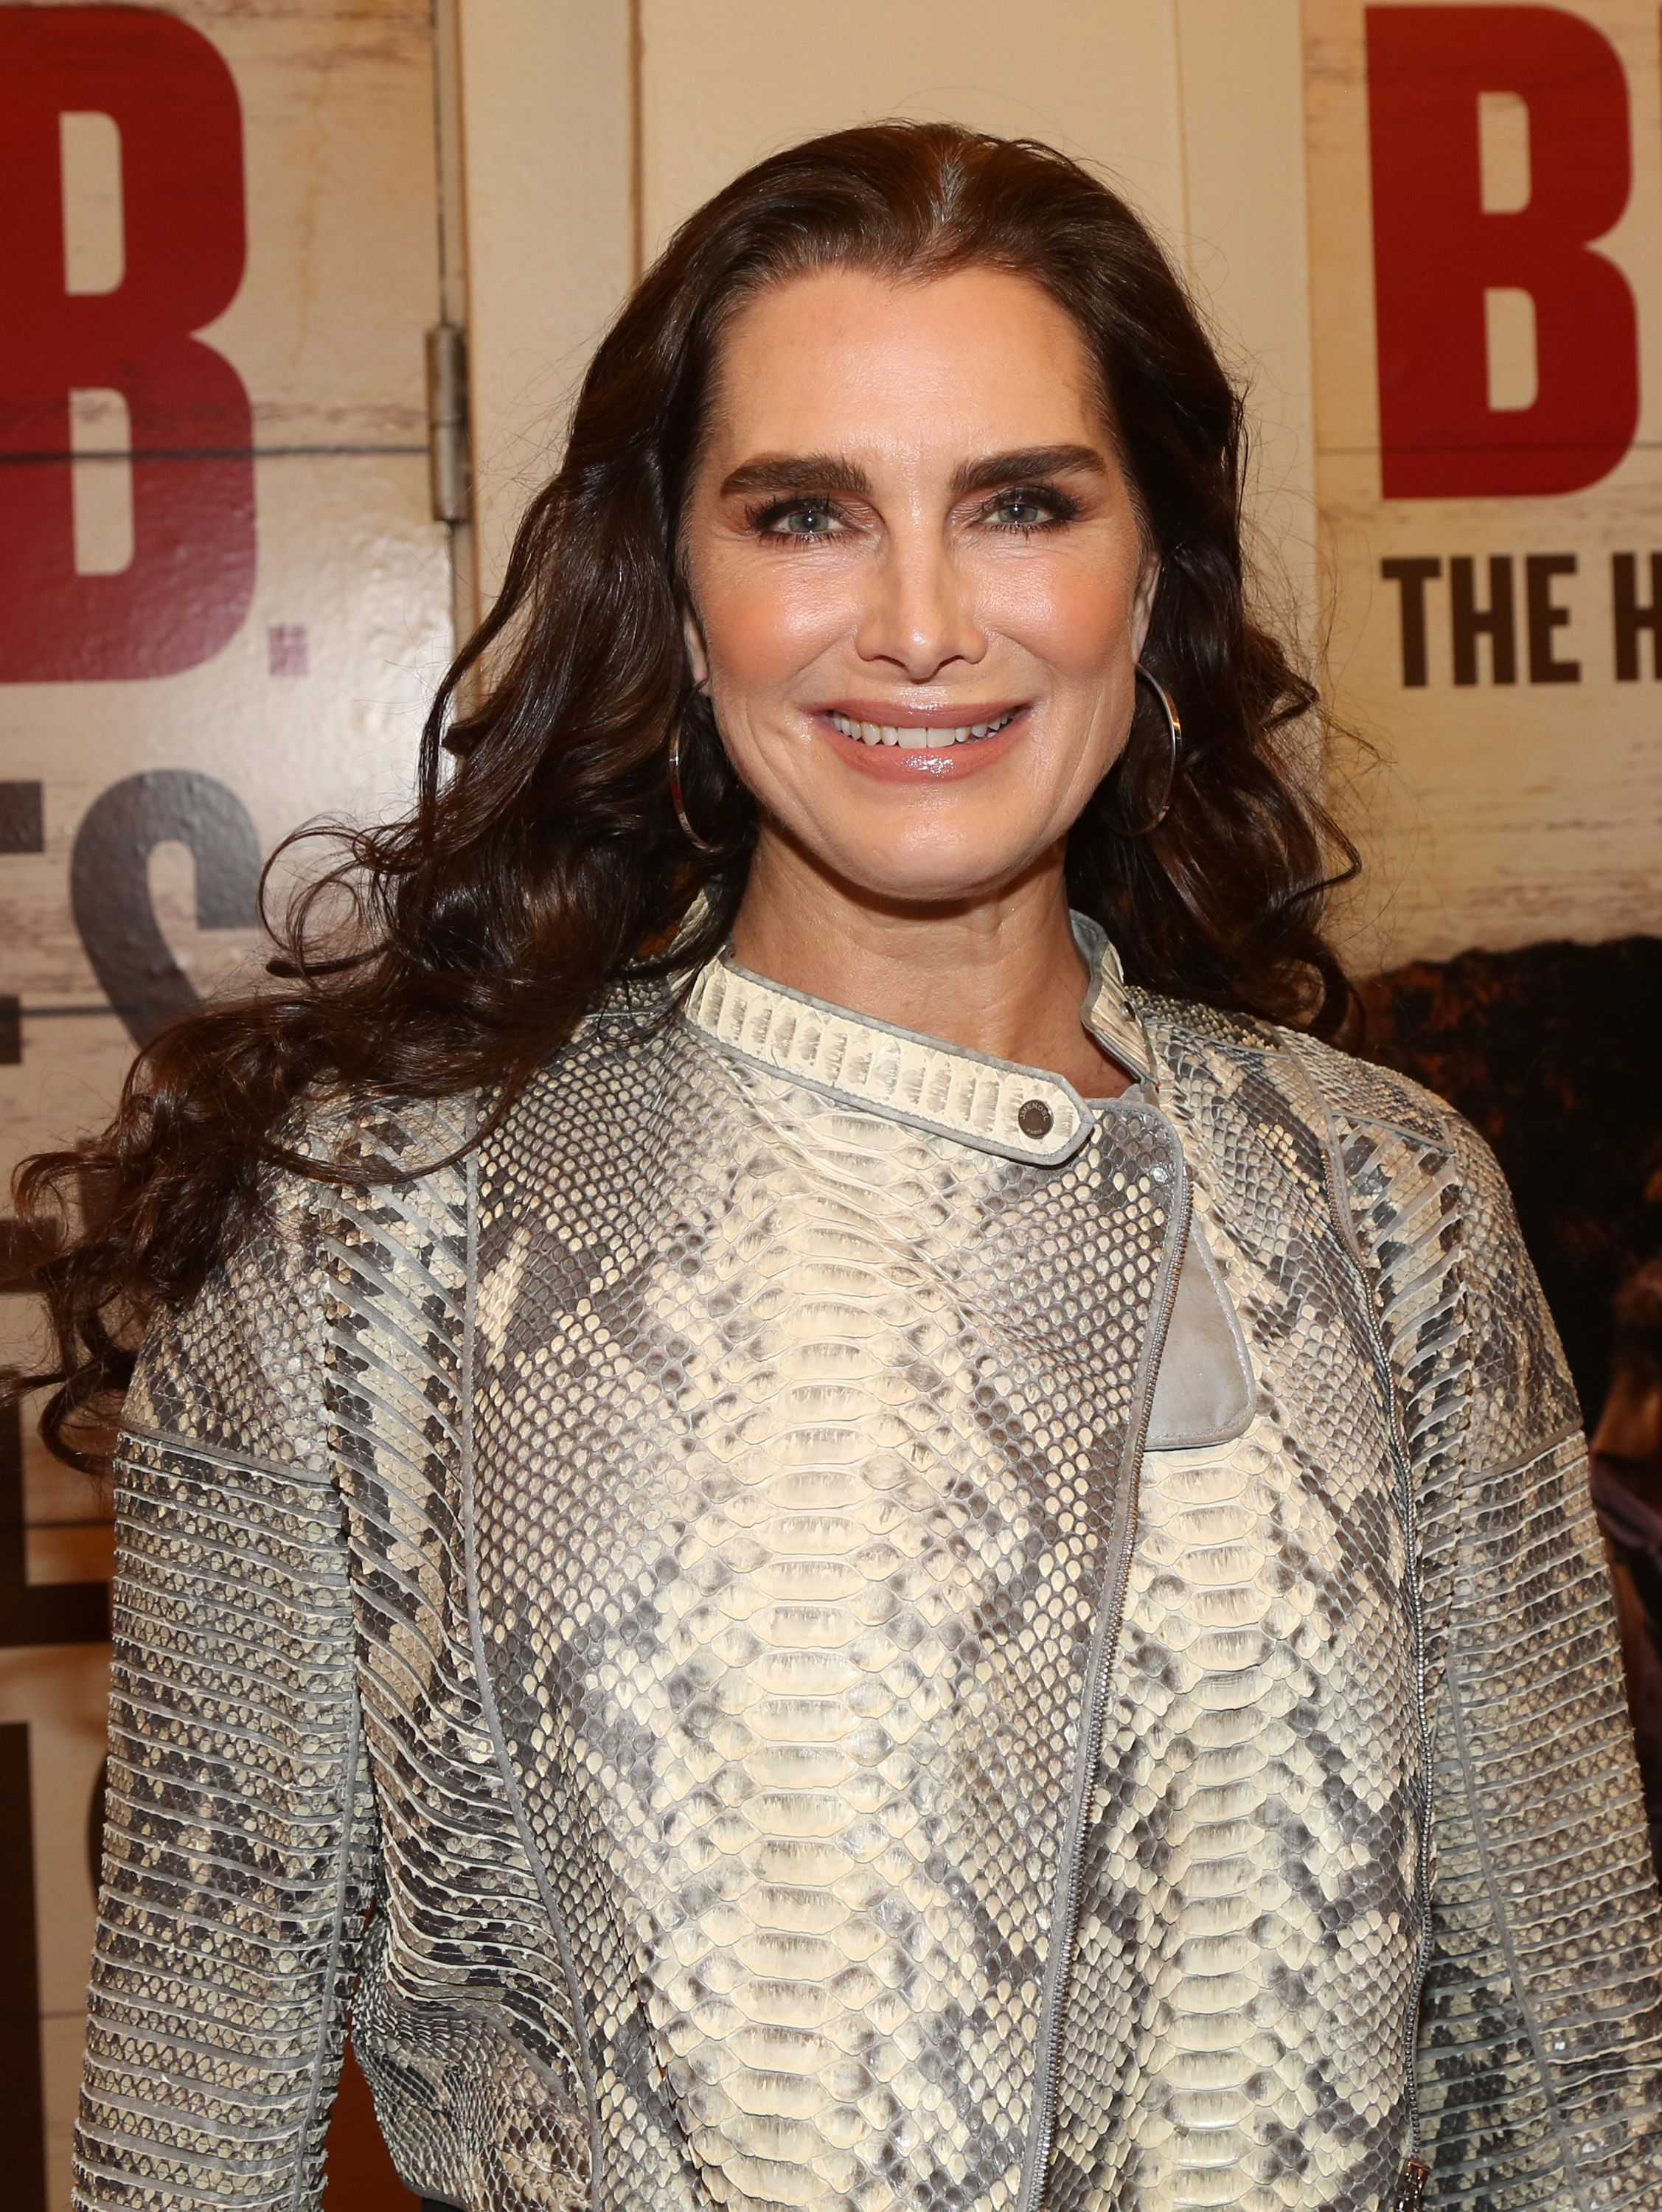 """Brooke Shields poses at the opening night of the new Bob Dylan Musical """"Girl From The North Country"""" on Broadway at The Belasco Theatre on March 5, 2020   Photo: Getty Images"""